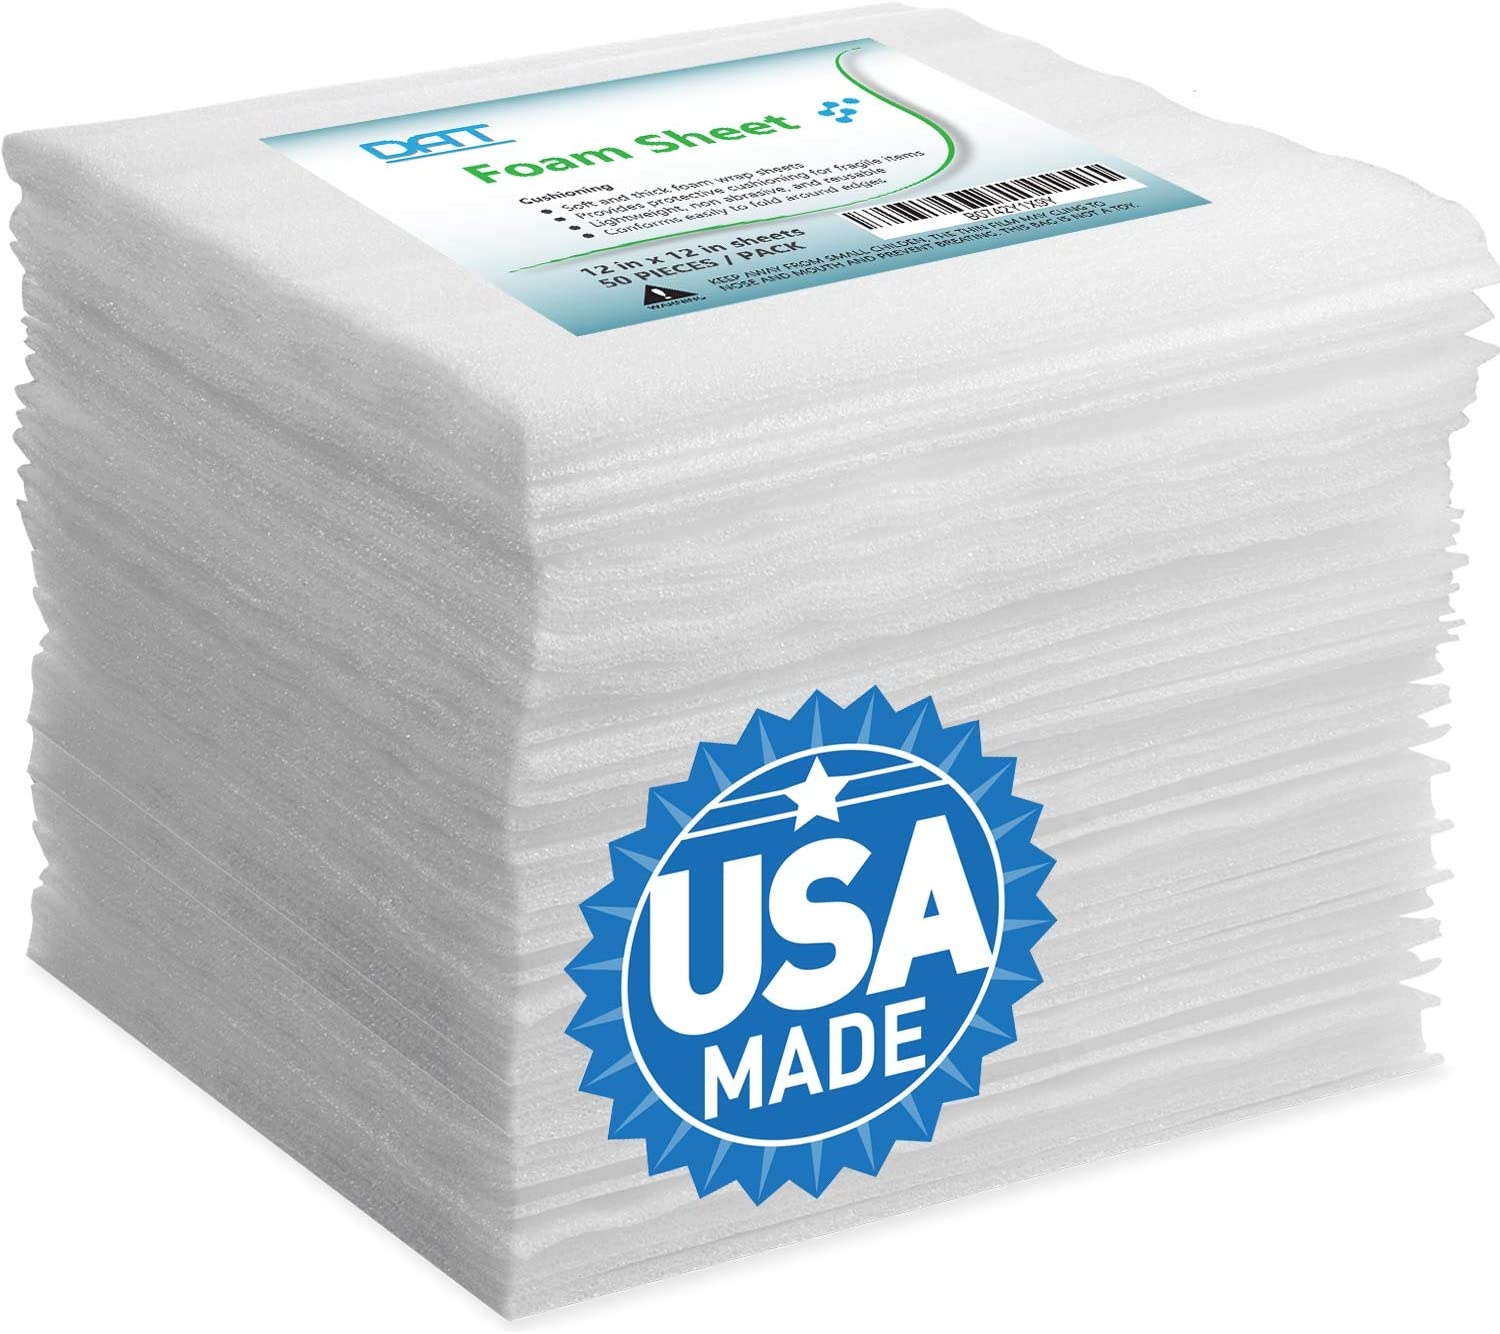 """Foam Wraps, DAT 12"""" x 12"""" Foam Wrap Sheets Cushioning for Moving Storage Packing and Shipping Supplies, 50-Pack (White) (B0742Y1X9Y): Office Products"""